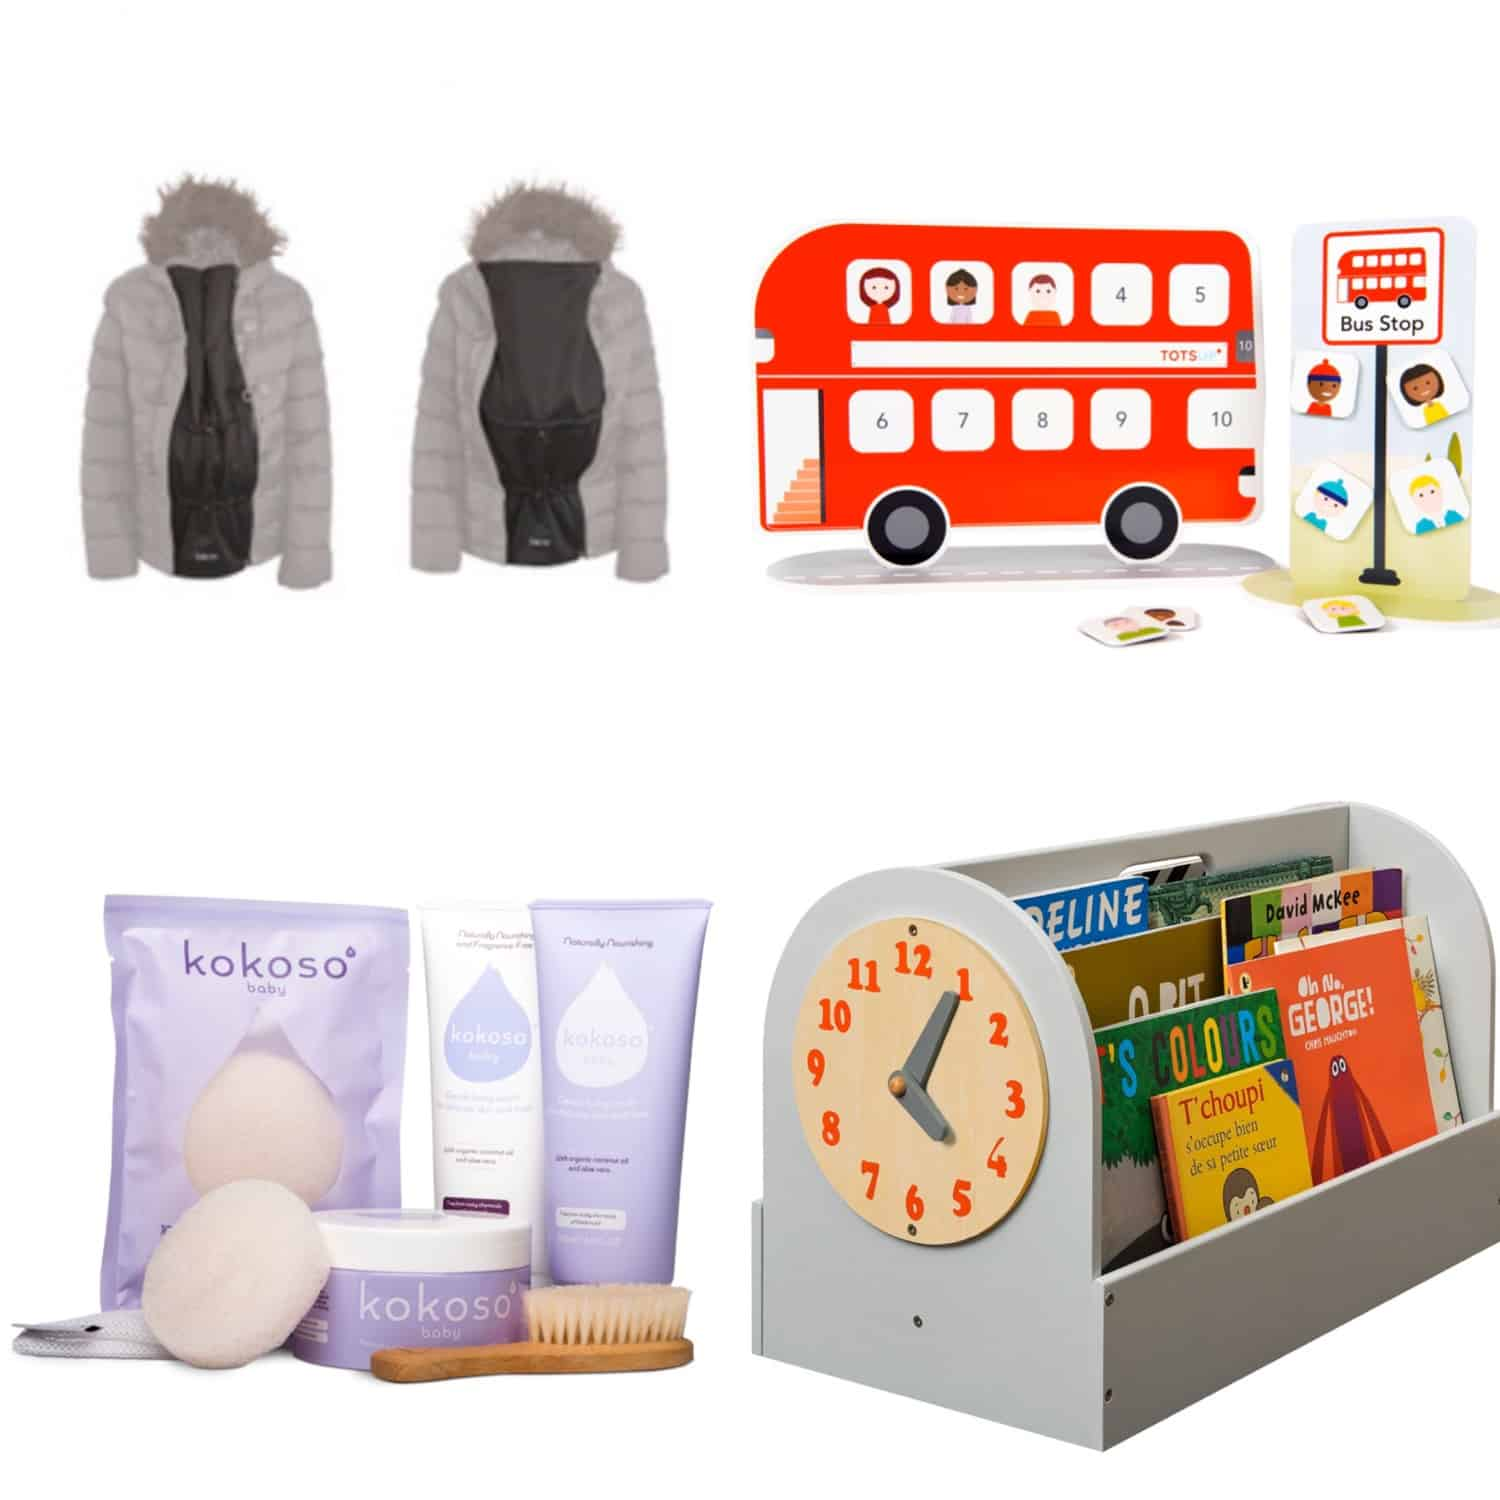 black friday deals kids brands, small business, shop small, black friday sale